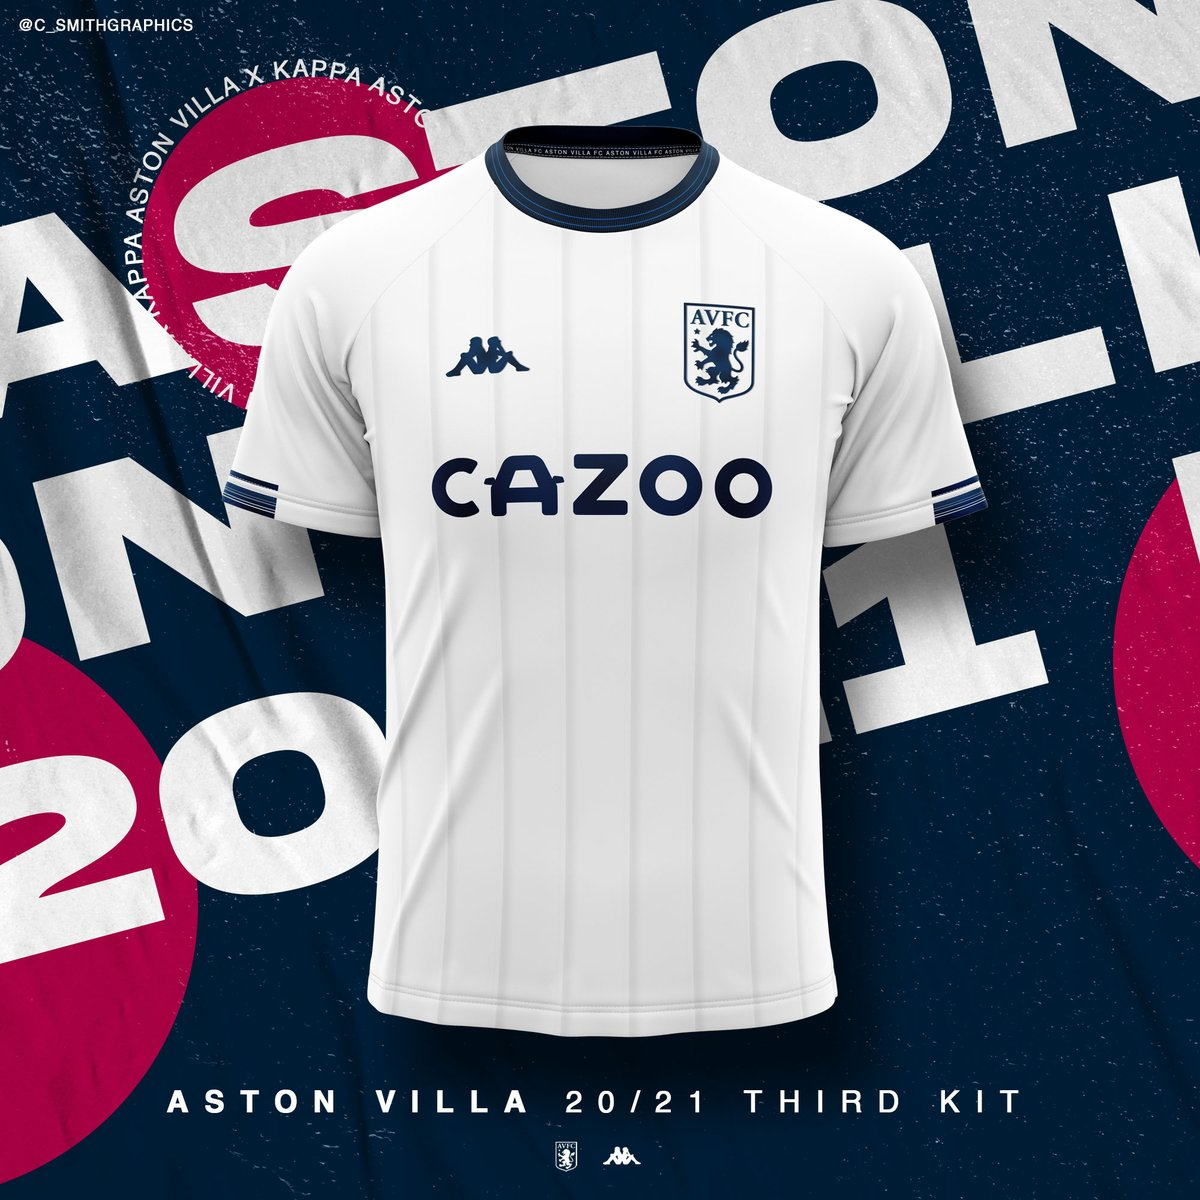 Charlie Smith On Twitter Aston Villa 20 21 Concept Kit Design Let Me Know What You Think Astonvilla Aston Villa Astonvillakit Football Footballkit Conceptkit Graphicdesign Graphic Design Kappa Astonvillakit Astonvillaconceptkit